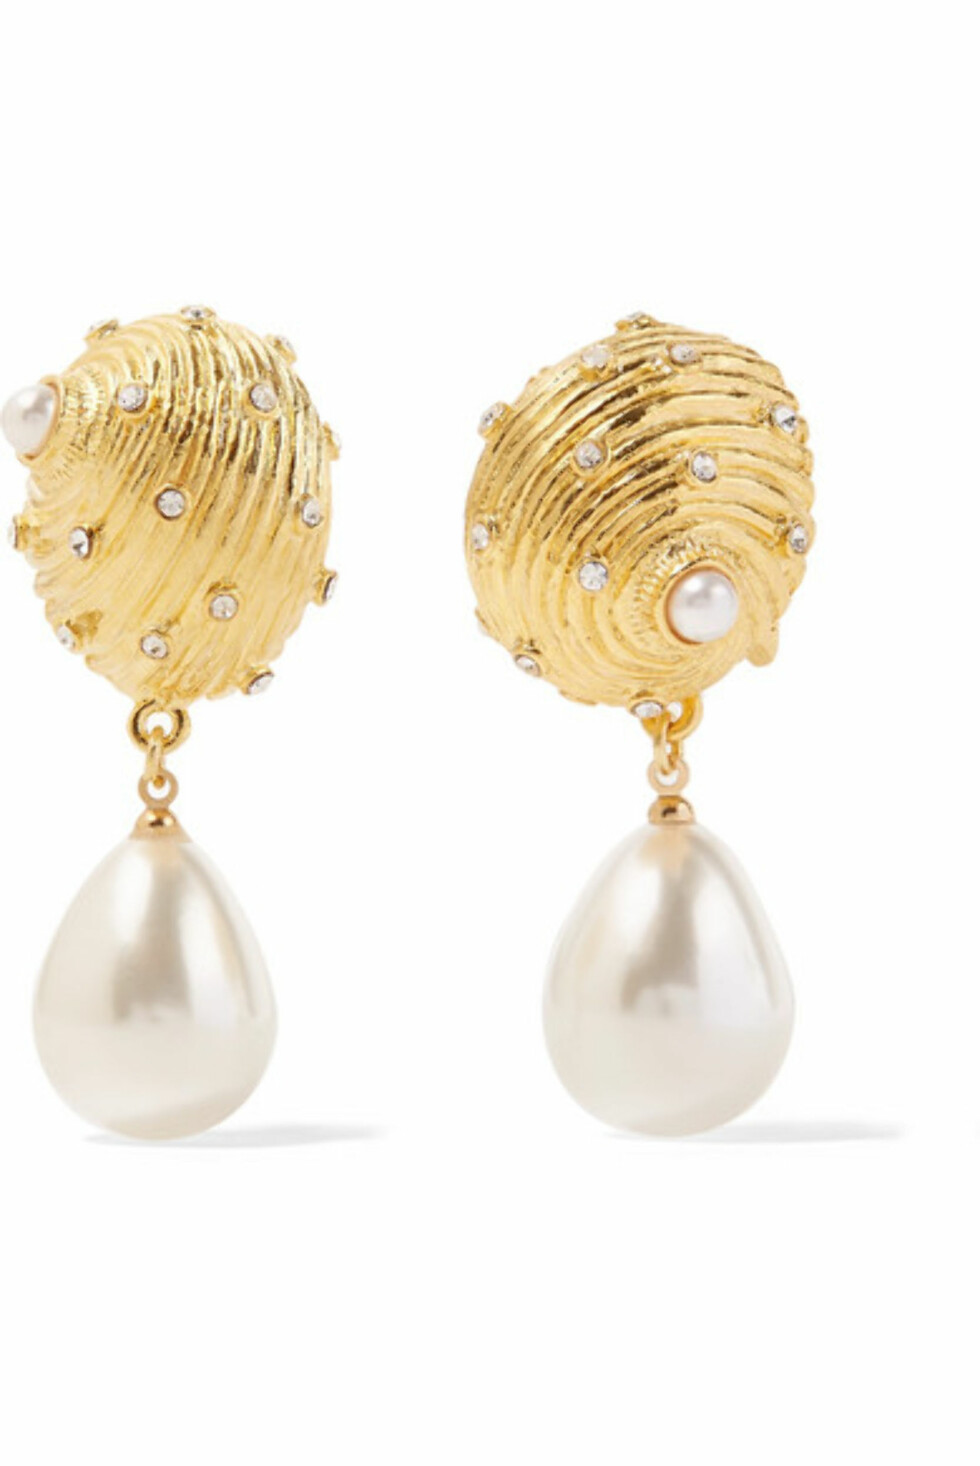 Øredobber fra Kenneth Jay Lane |980,-| https://www.net-a-porter.com/no/en/product/1051467/Kenneth_Jay_Lane/gold-plated-crystal-and-faux-pearl-clip-earrings